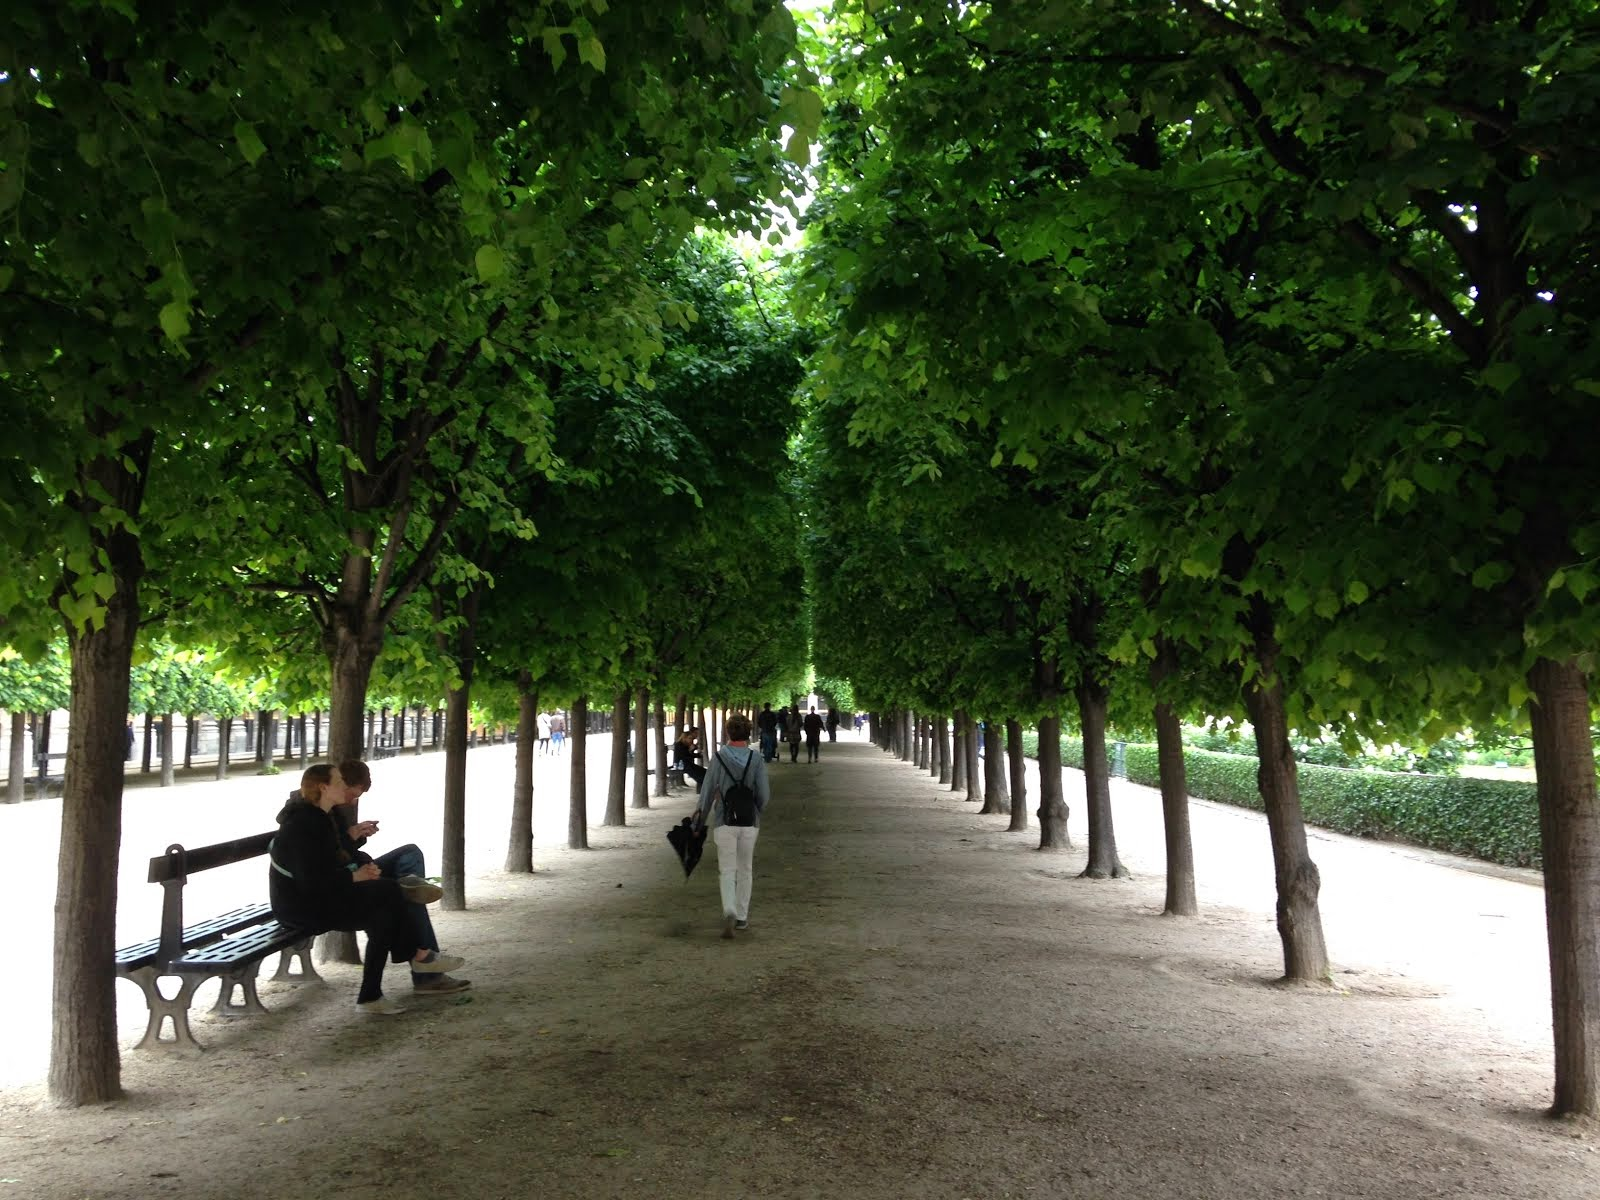 Le Palais Royal, between the trees and light showers